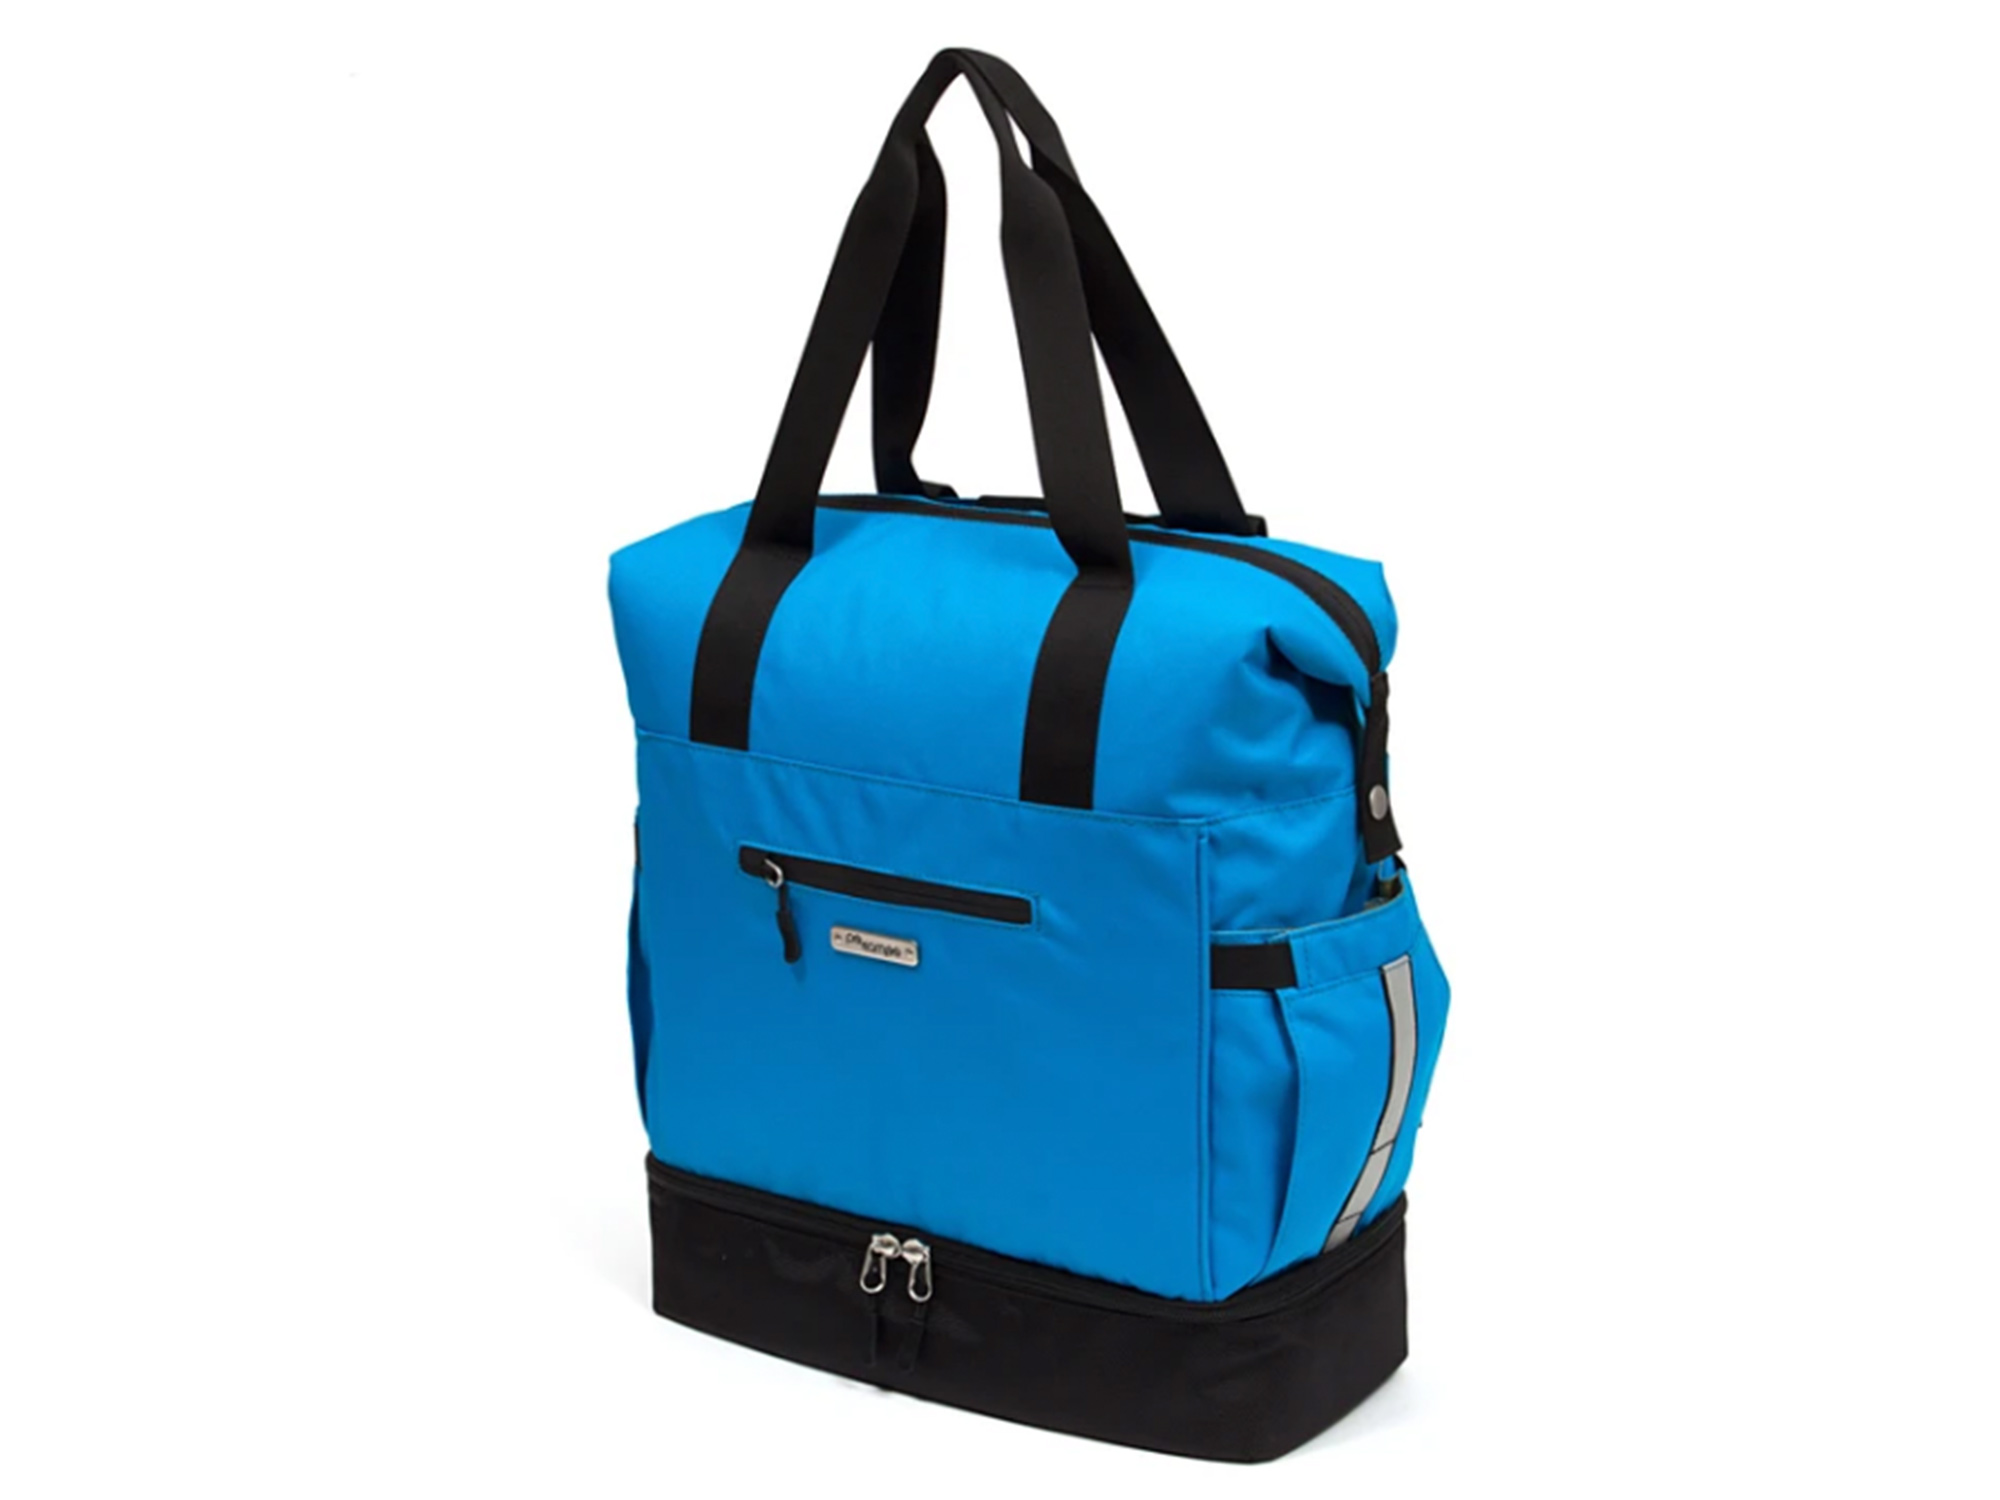 po campo pannier bag in blue with tote handles and backpack straps